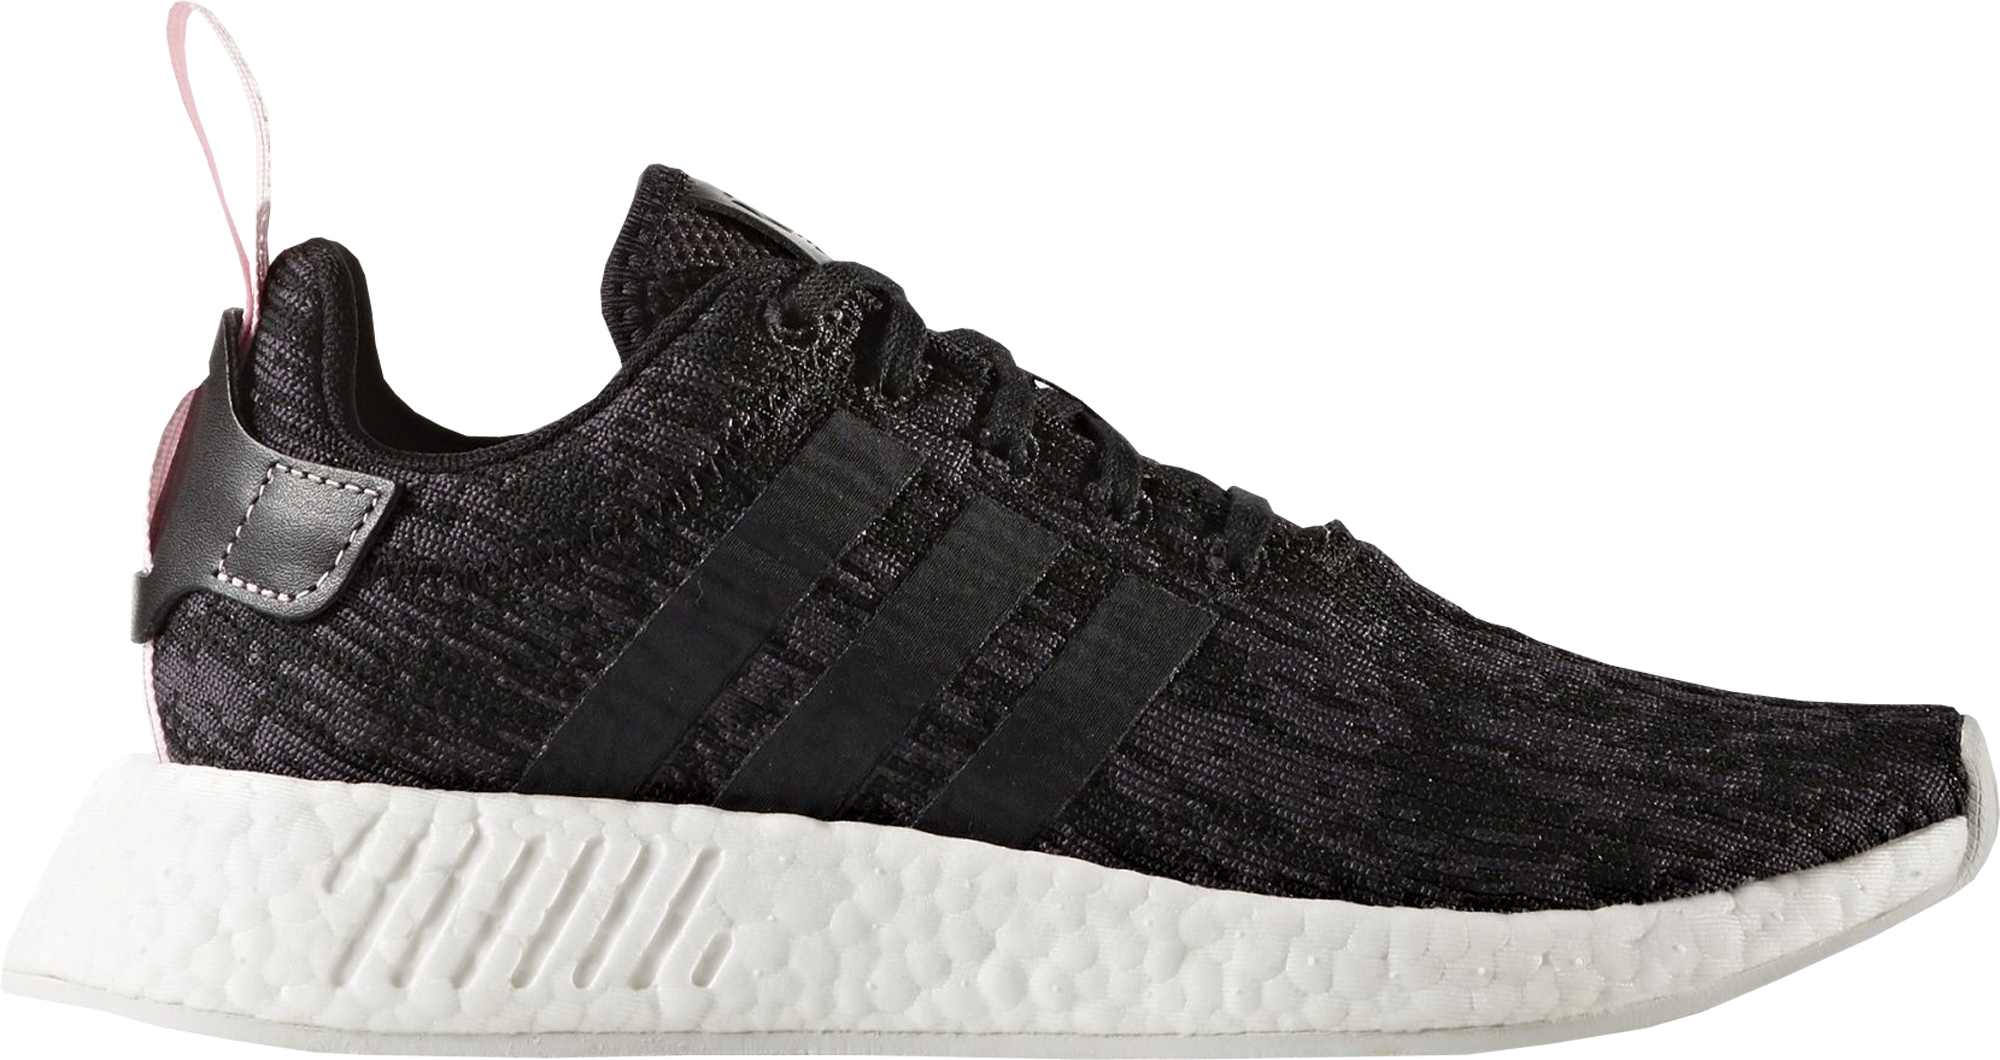 24c2b3d52 adidas nmd r2 black red adidas nmd women r1 primeknit Equipped.org Blog